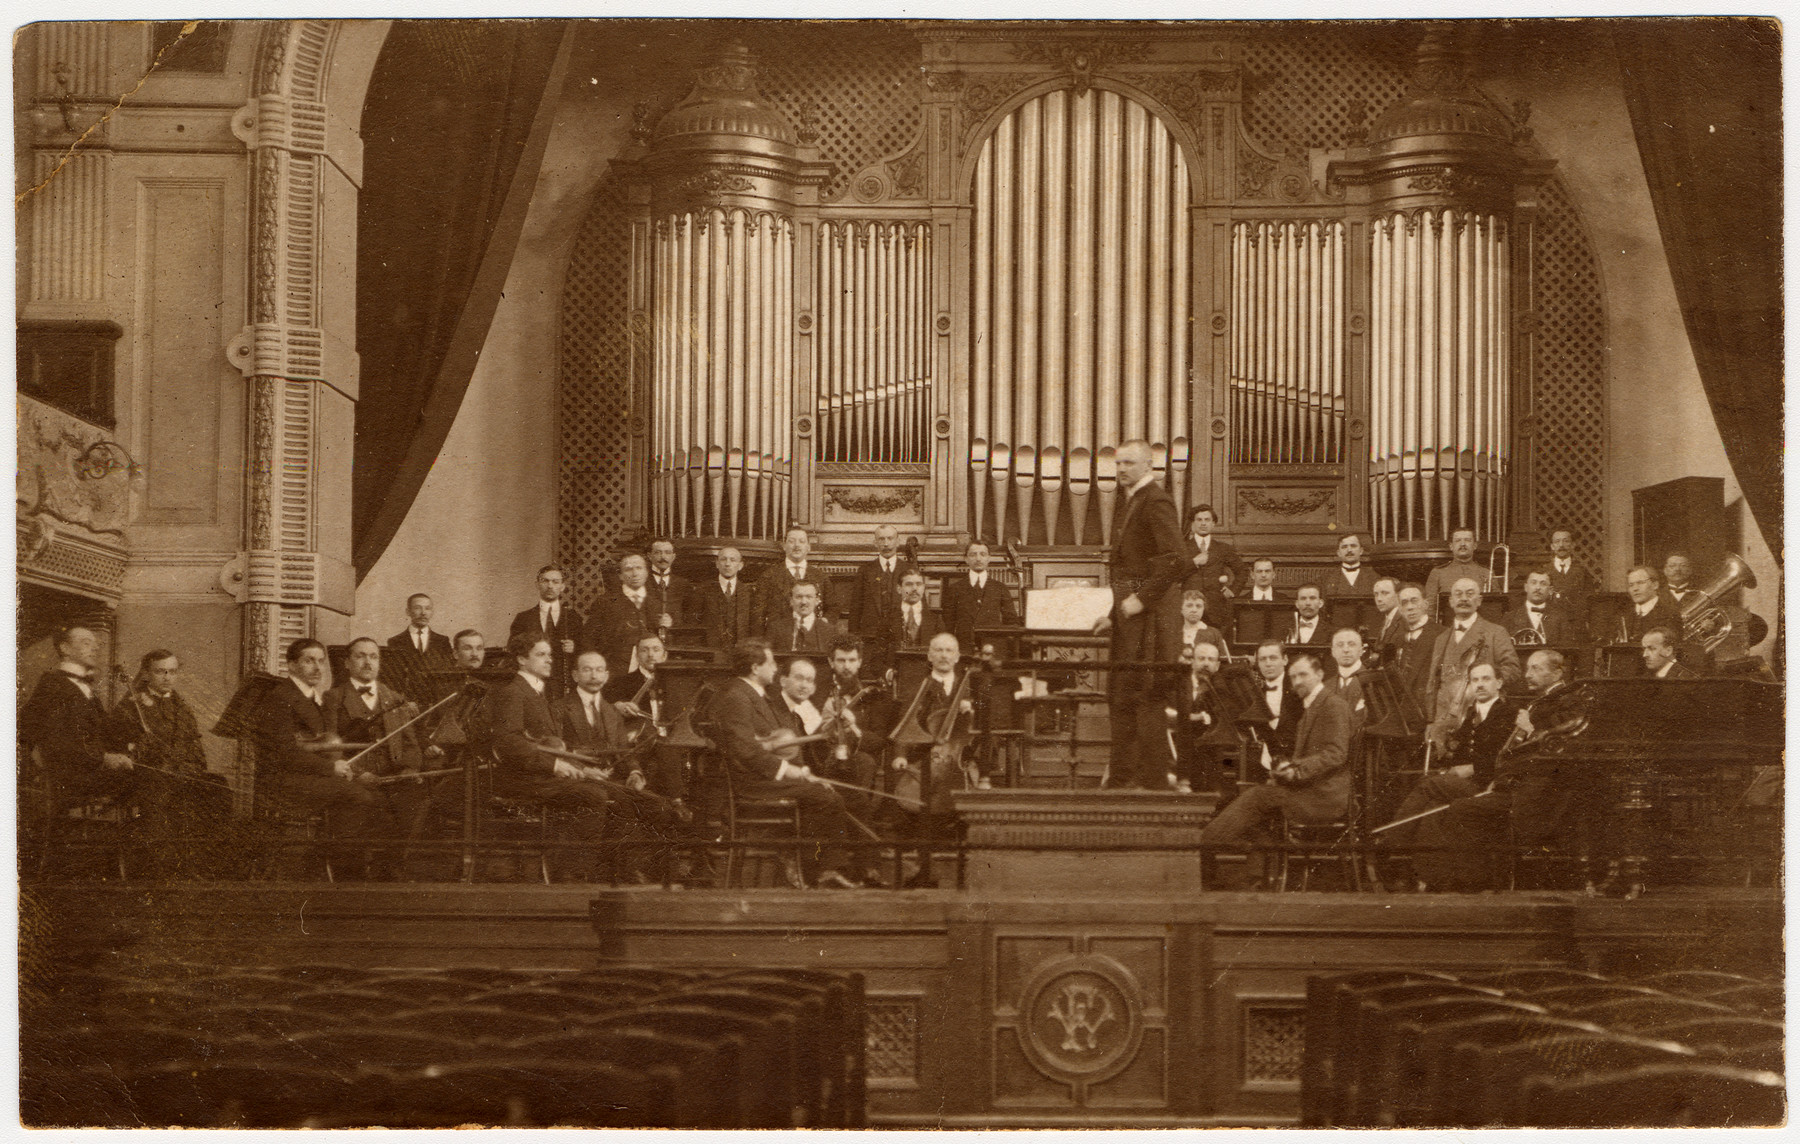 Members of a Polish symphony, including many Jewish musicians, pose on stage with their instruments.